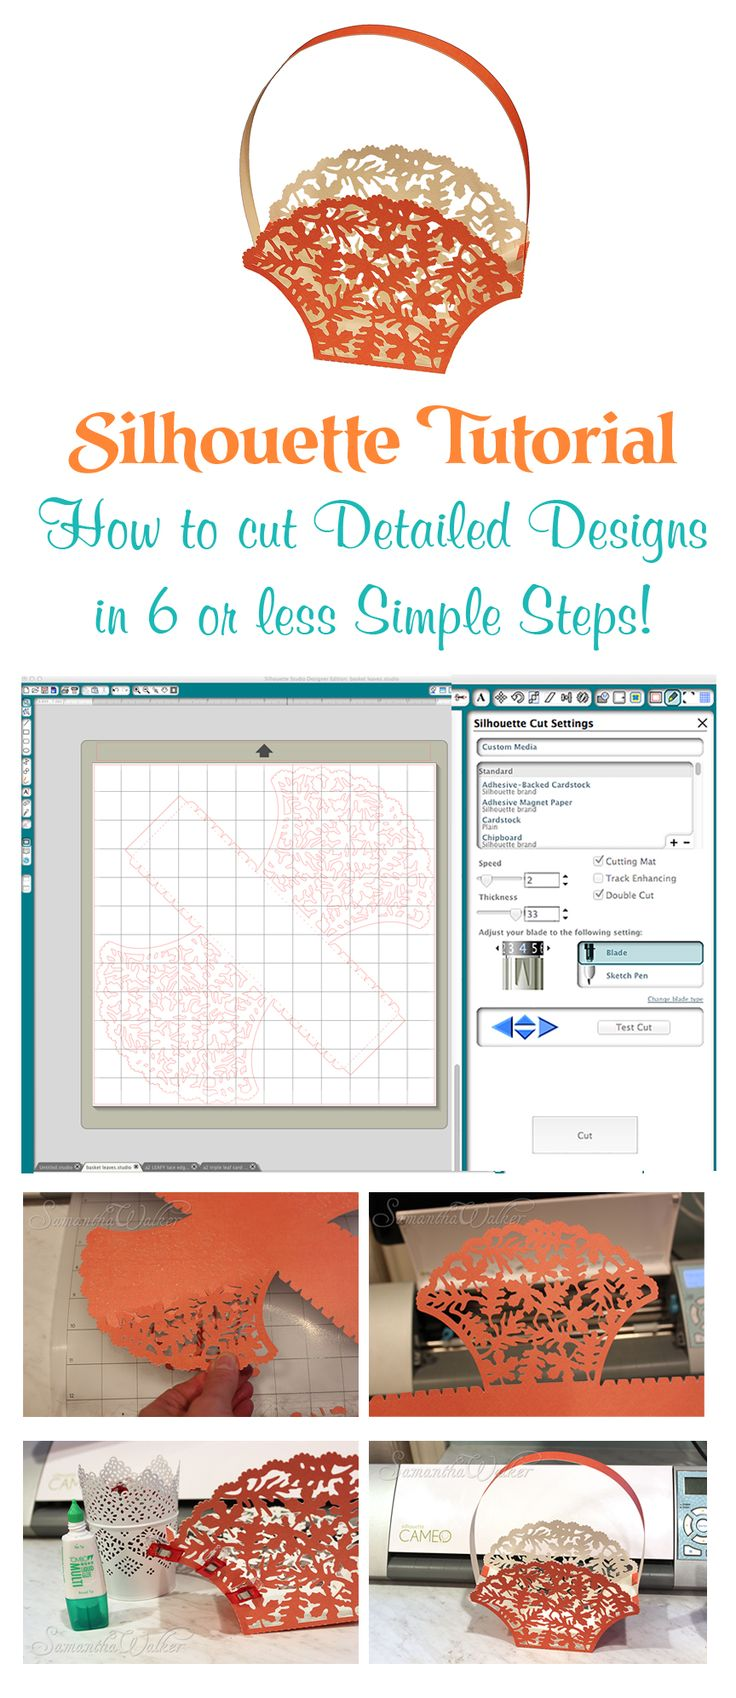 Silhouette Tutorial! Don't be afraid of cutting detailed designs with the Silhouette machine. You can do it with this simple tutorial that breaks it down into 6 steps or less!